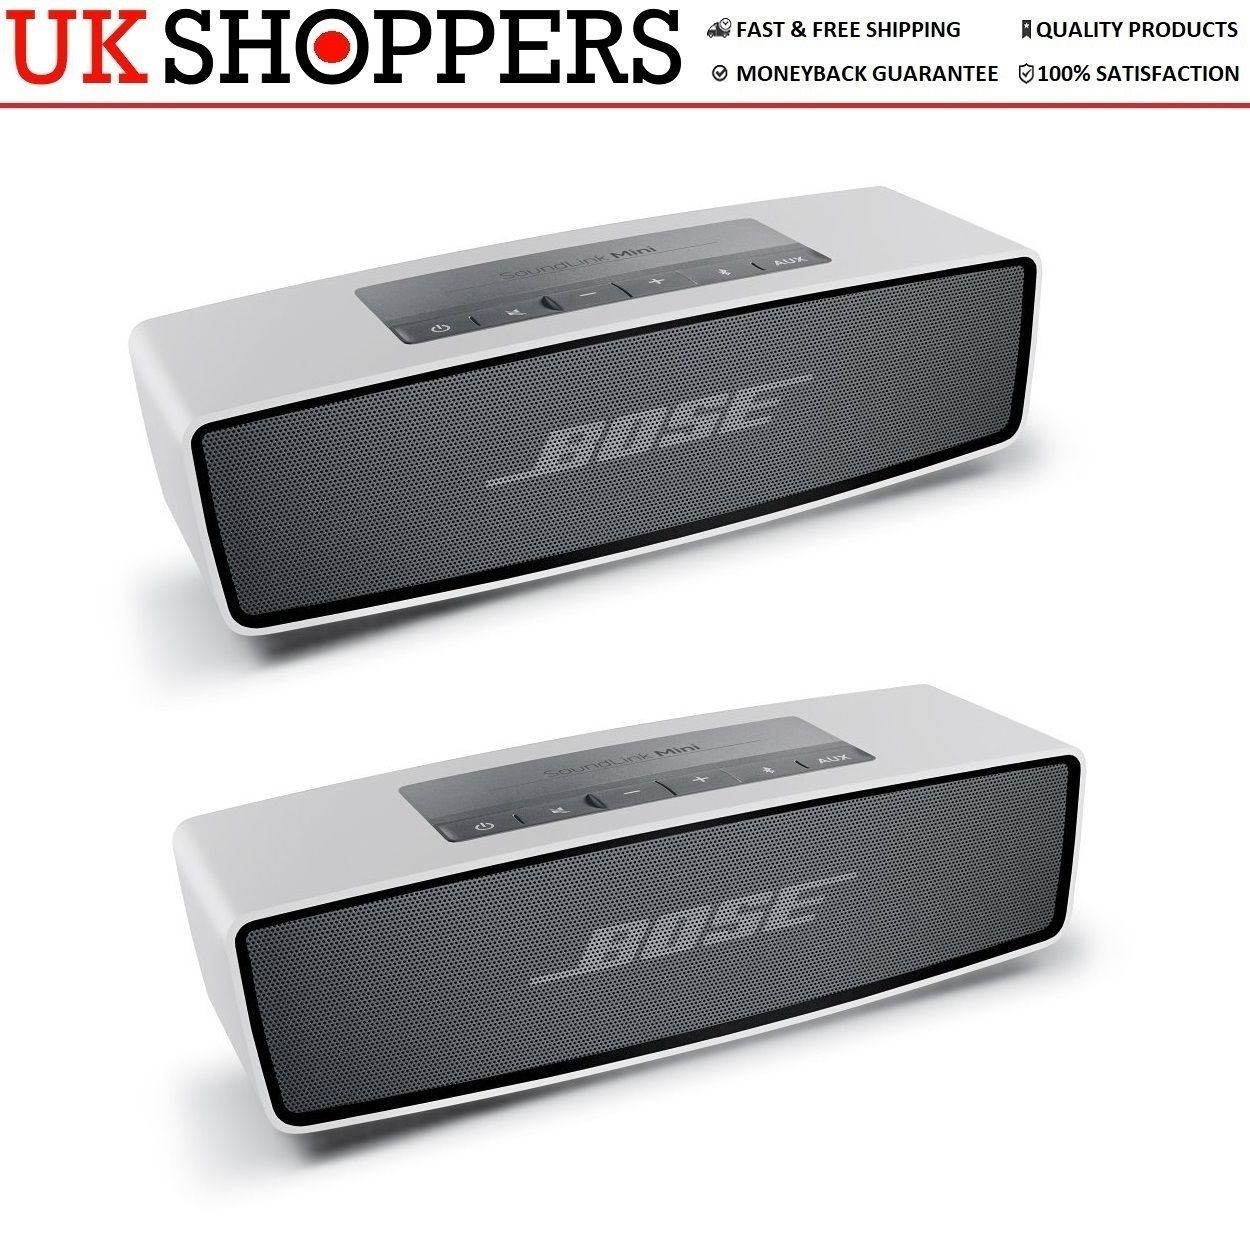 achat bose soundlink mini portable wireless bluetooth mobile speaker new fast pas cher. Black Bedroom Furniture Sets. Home Design Ideas